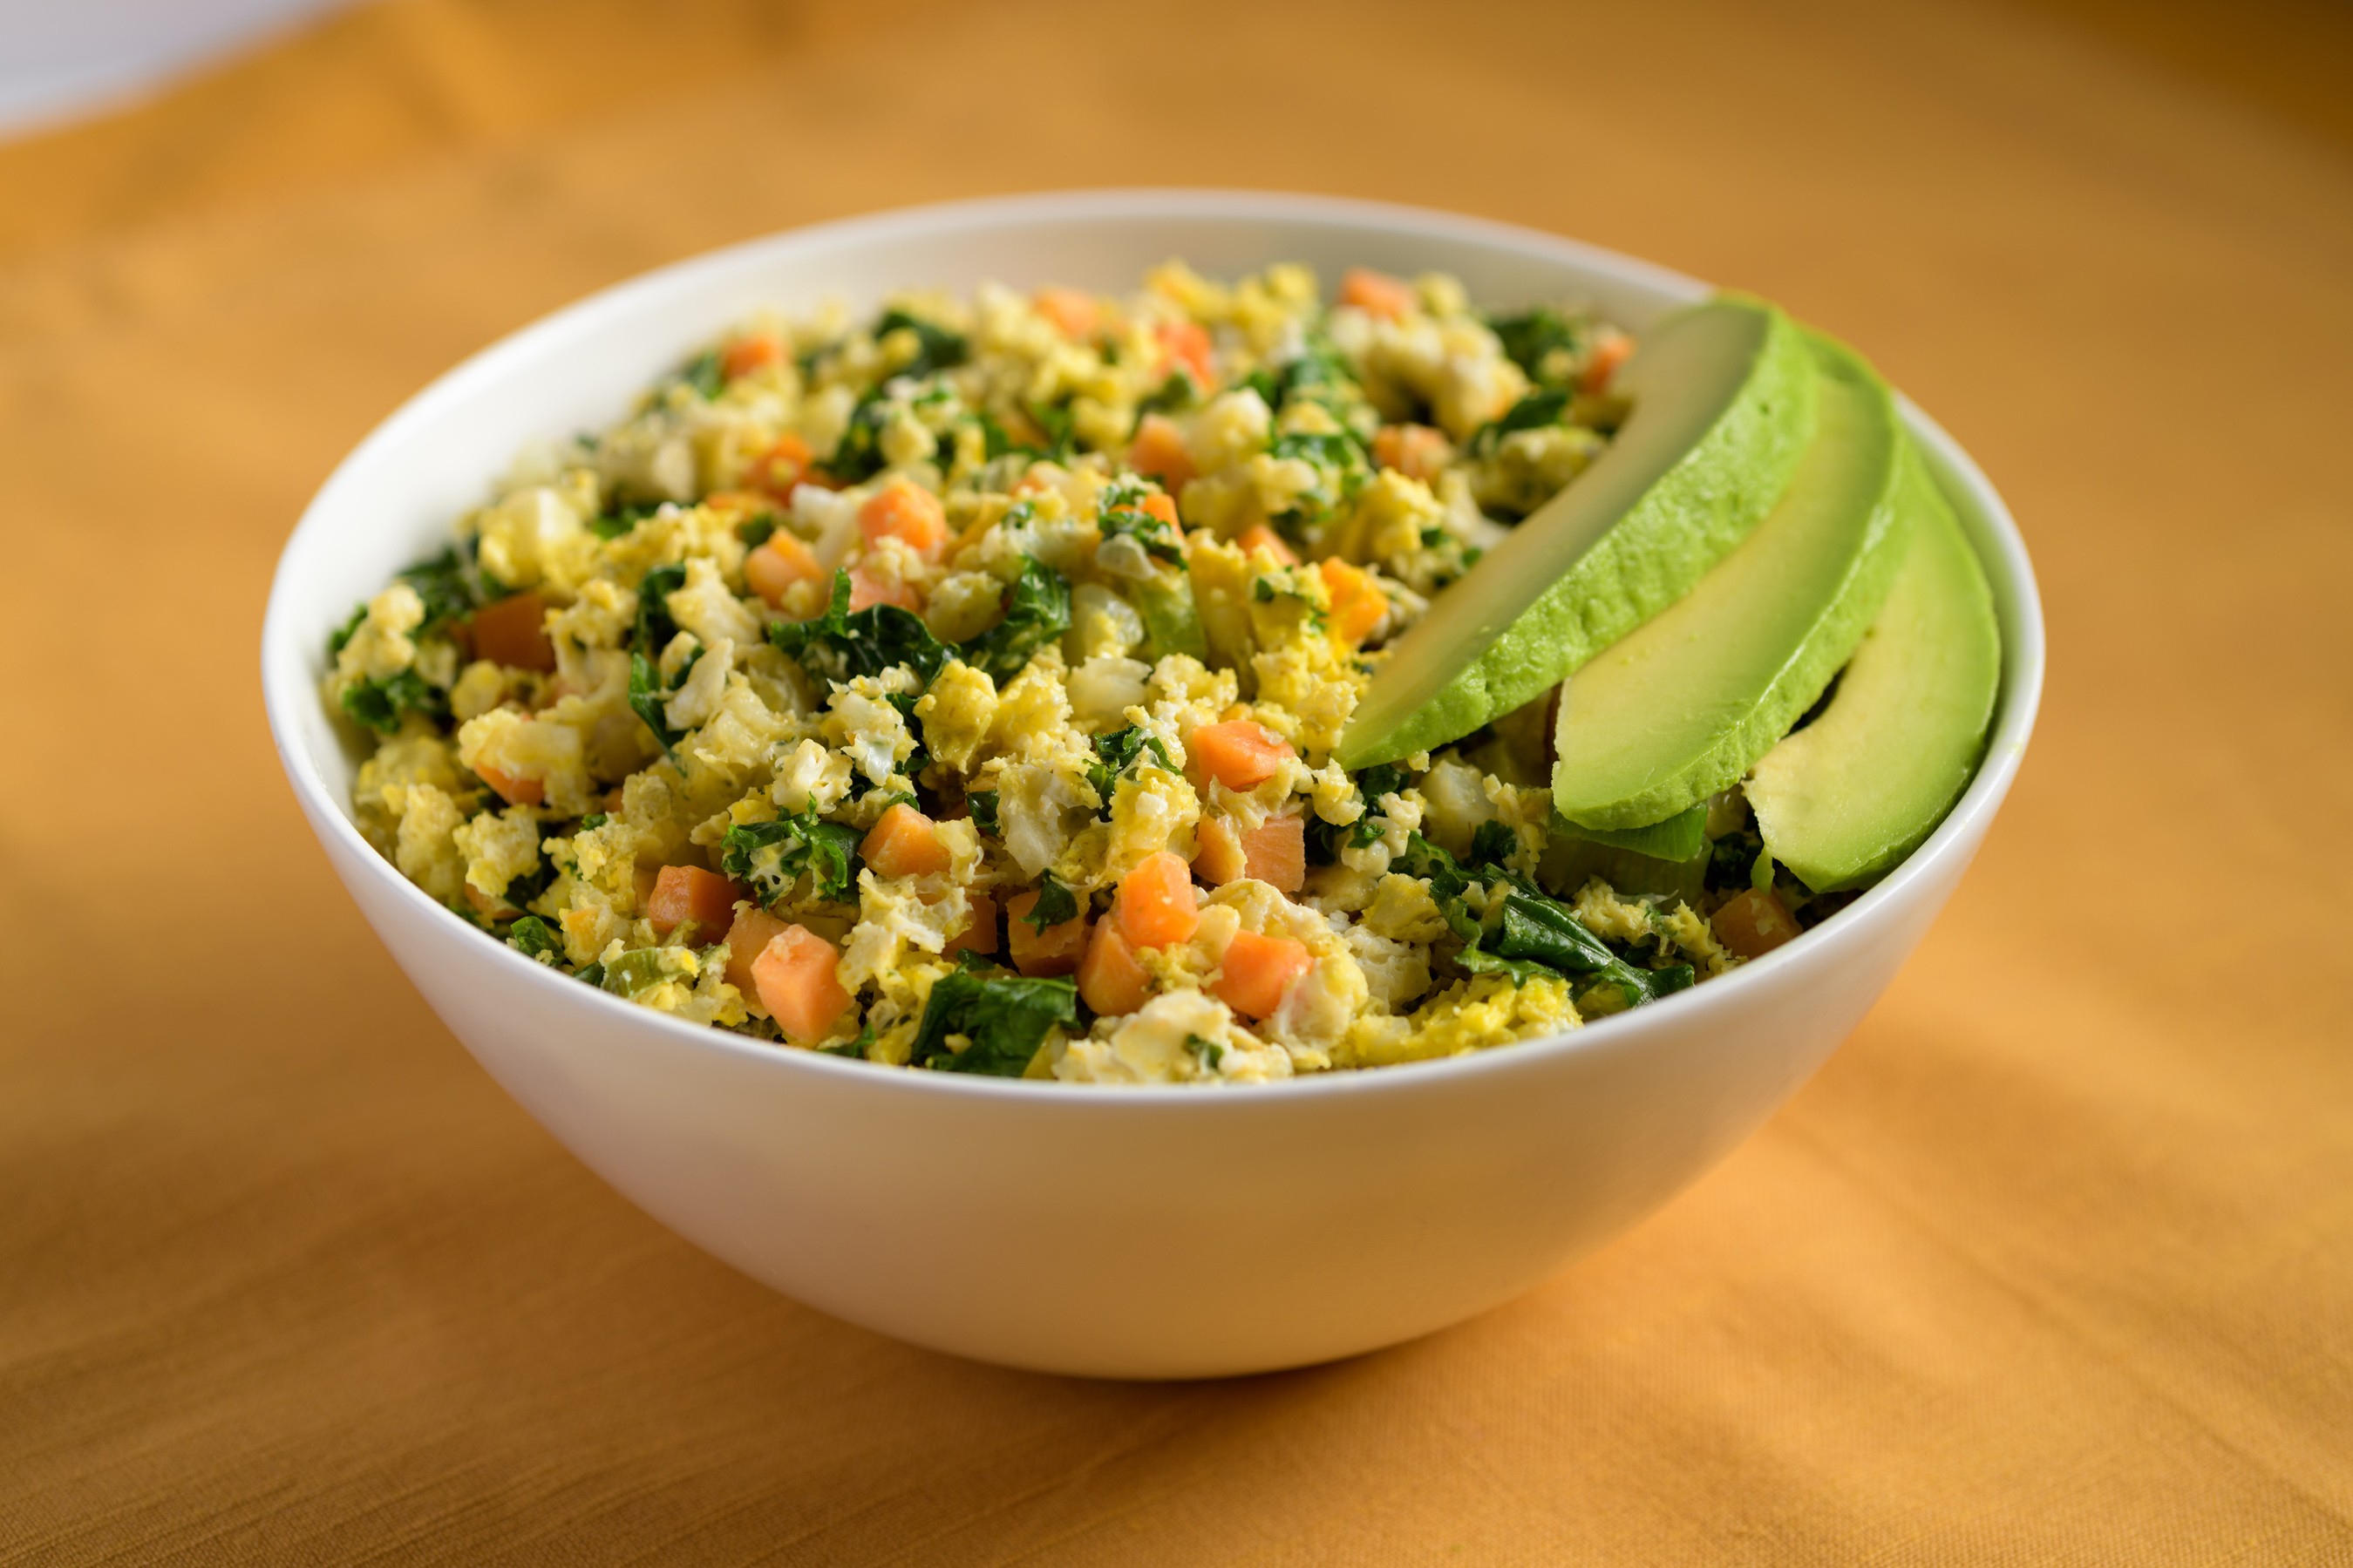 Green Giant Fresh Vegetable Meal Bowls can be customized to fit any recipe, diet or taste.